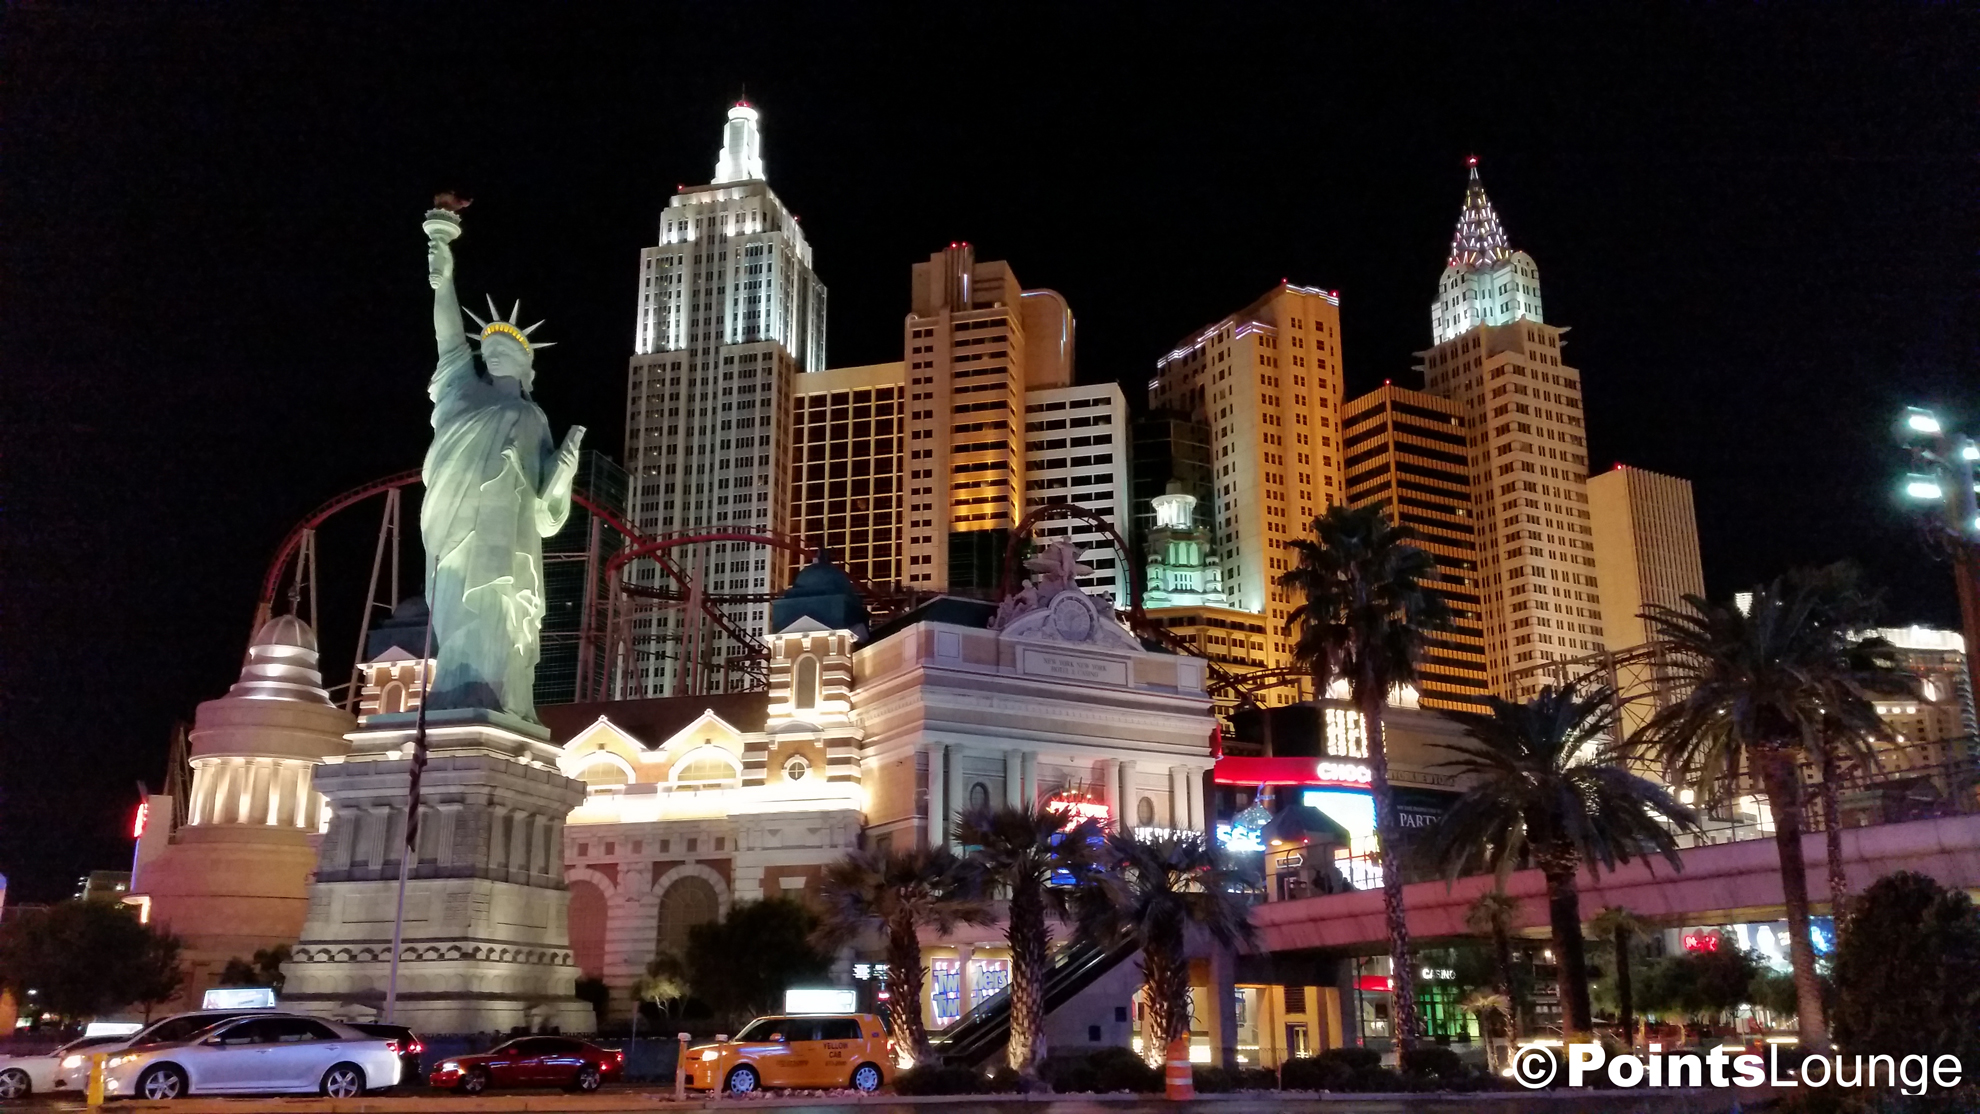 New York Las Vegas A Mlife Rewardgm Resorts Hotel And